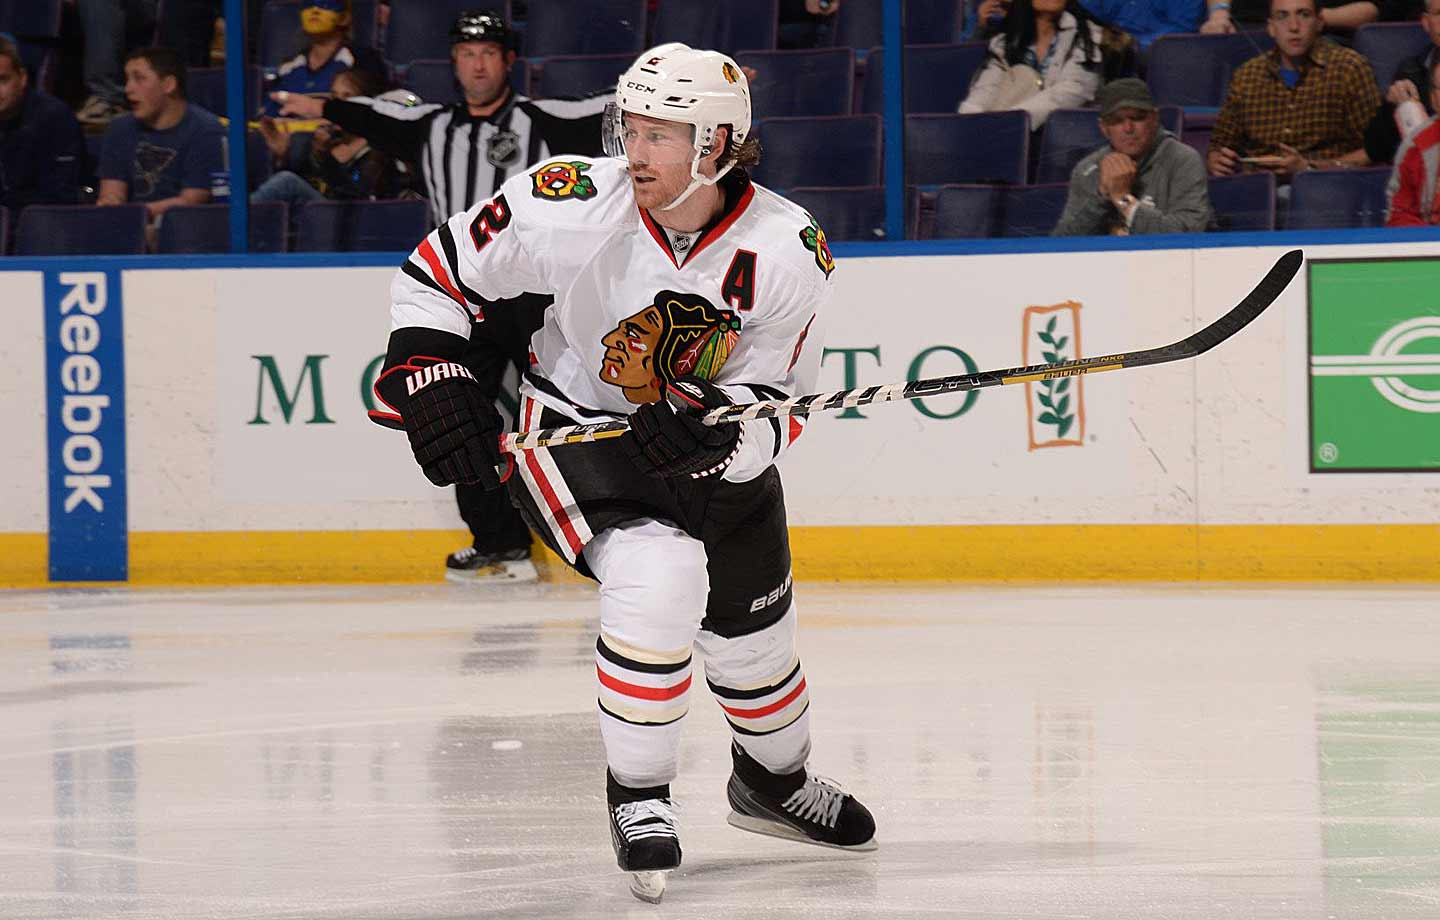 Widely considered to be one of the league's best defensemen, Keith joined the Blackhawks the season after the lockout and went on to win the Norris Trophy in 2010 and '14. He also bagged Olympic gold medals while playing for Canada those years. In 2010 and 2013, he helped propel the Blackhawks to the Stanley Cup.